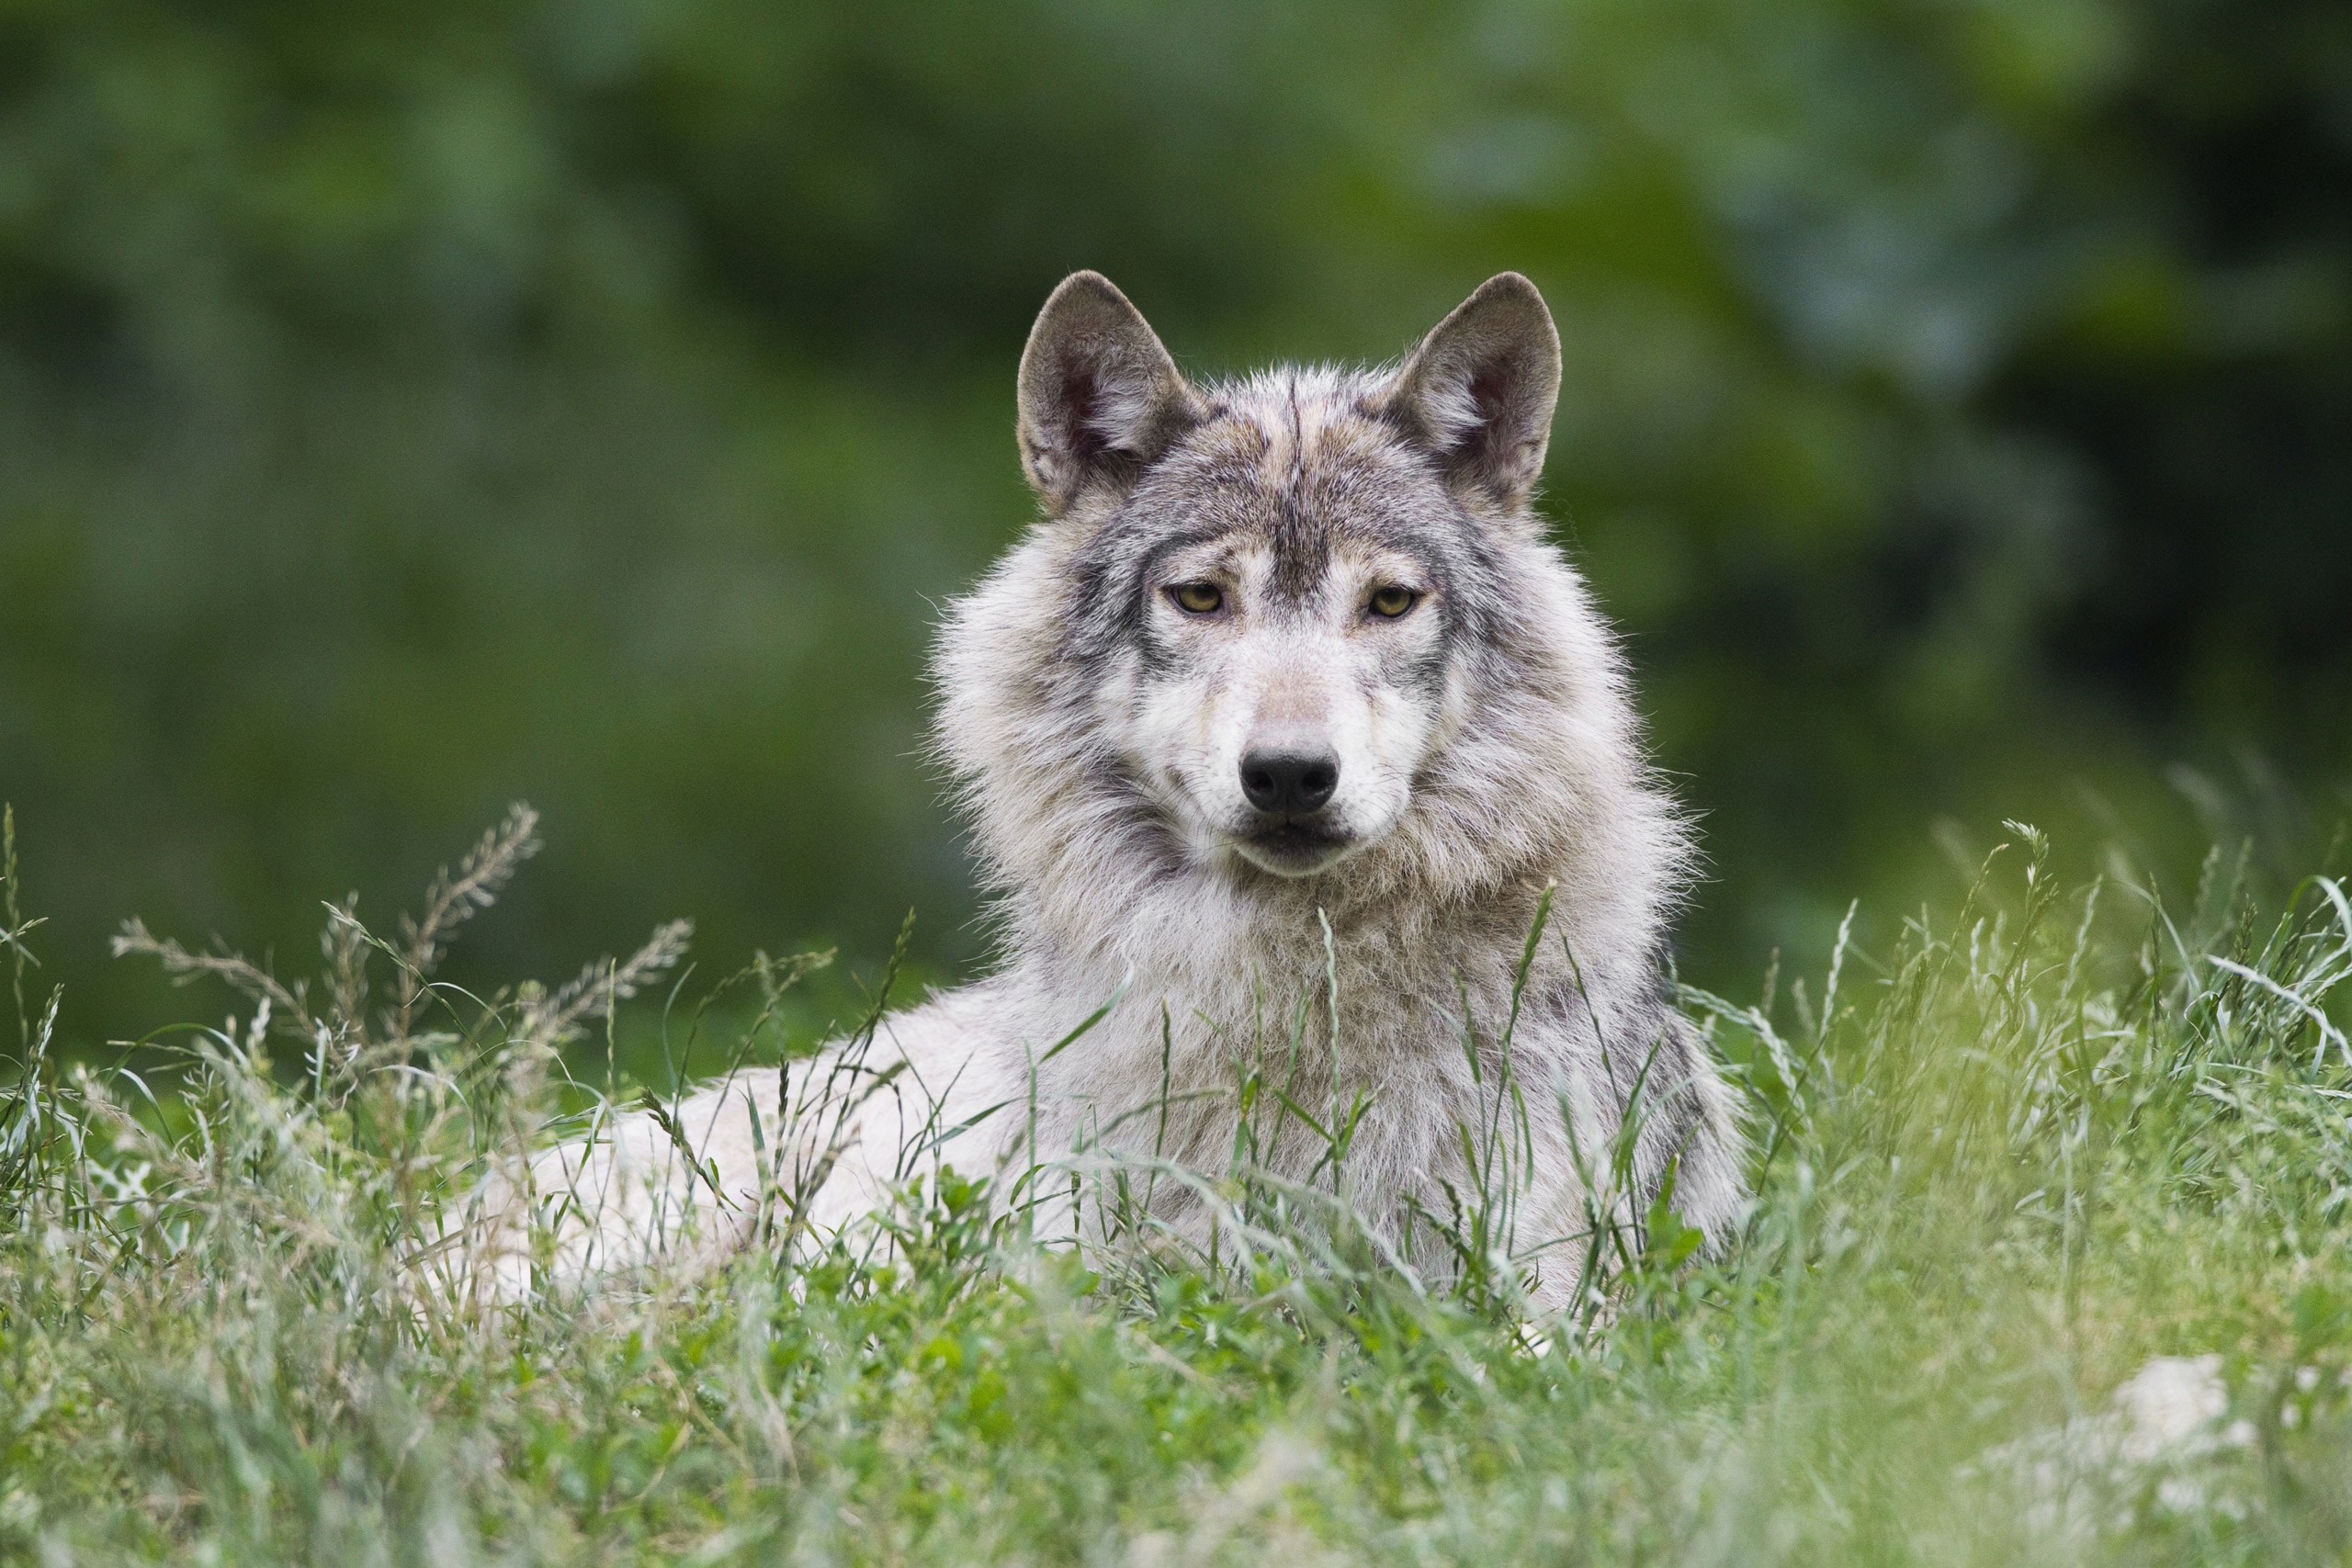 """Timber Wolf, <i>Canis lupus lycaon.</i>Status: Varied. The Gray Wolf is endangered in some portions of the mountain-prairie region, threatened in the Great Lakes region and delisted due to recovery in other areas. Recently, the Eastern Timber Wolf was <a href=""""http://www.livescience.com/25043-eastern-wolves-separate-species.html"""">found</a> to be a separate species from the Gray Wolf, <i>Canis lupus</i>, and the status of the Eastern Wolf was put up for review."""